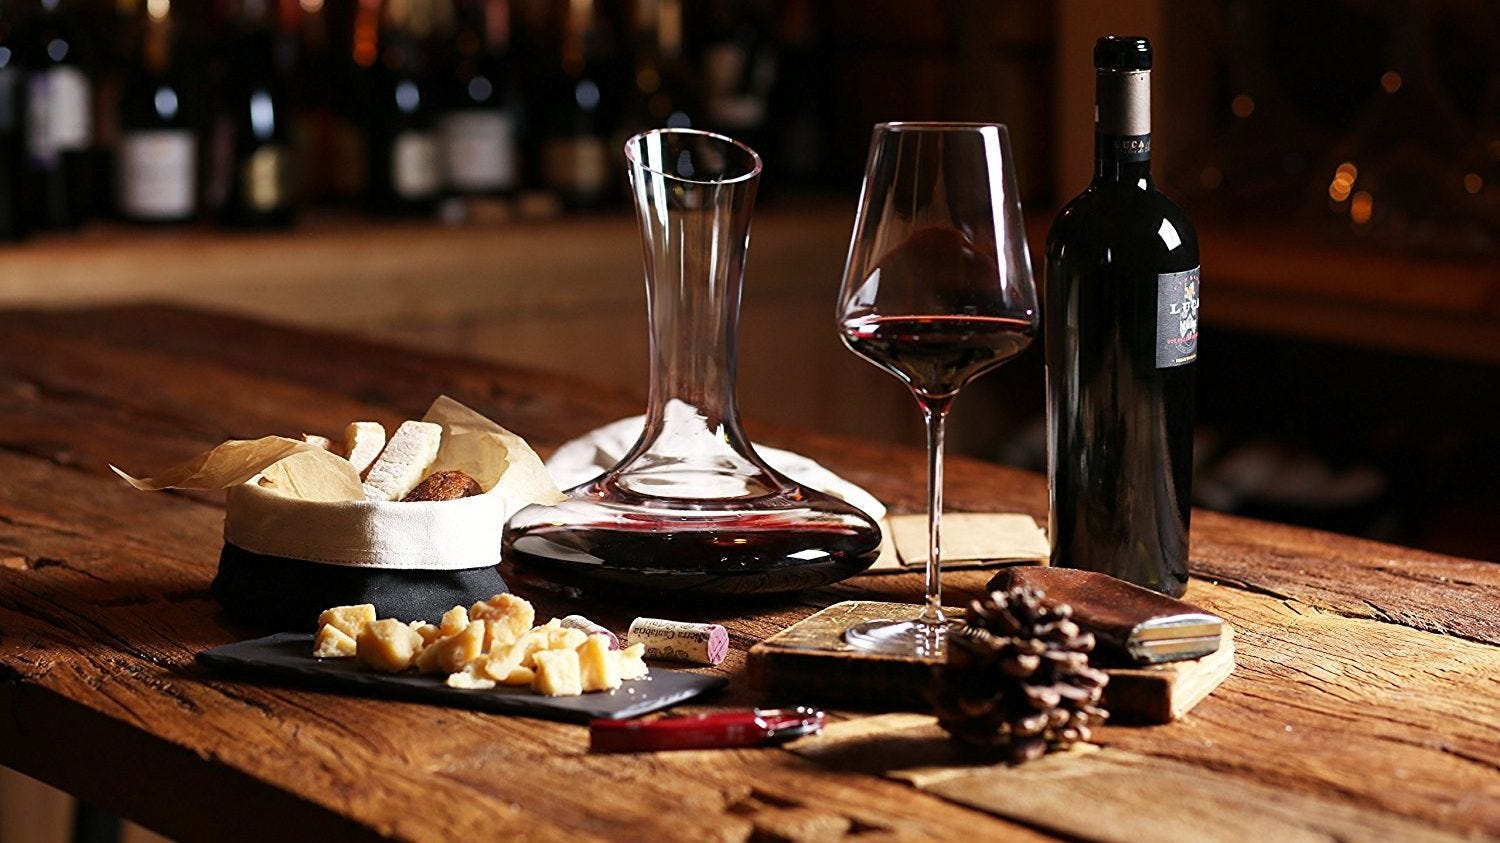 The 10 Best Gifts for Wine Lovers